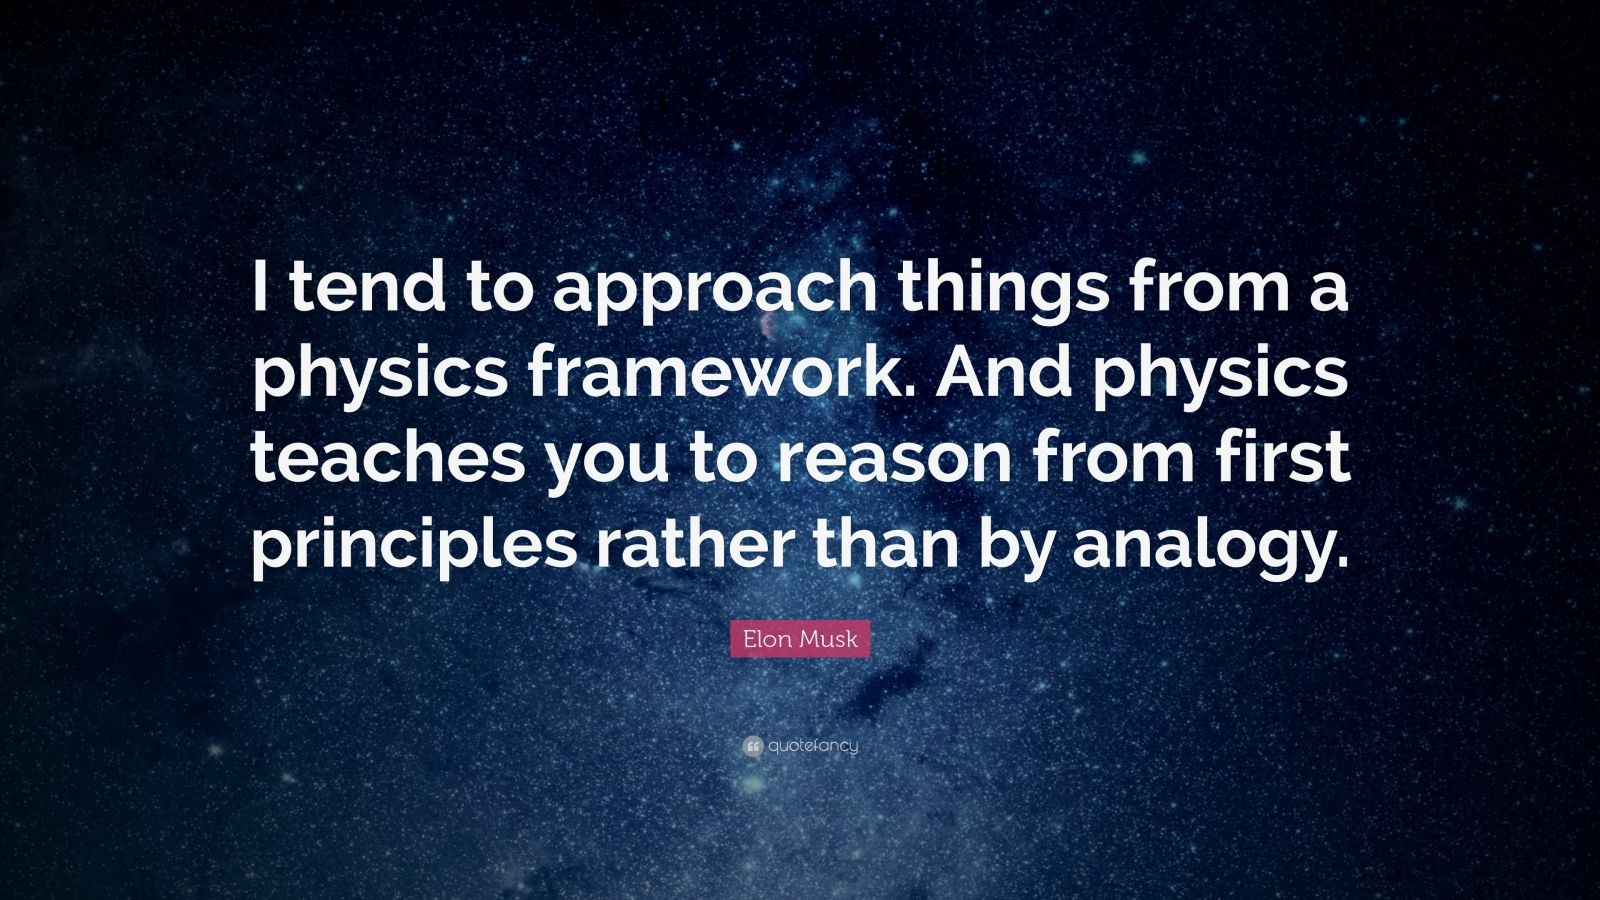 """Elon Musk Quote: """"I tend to approach things from a physics framework. And physics teaches you to reason from first principles rather than by analogy."""""""